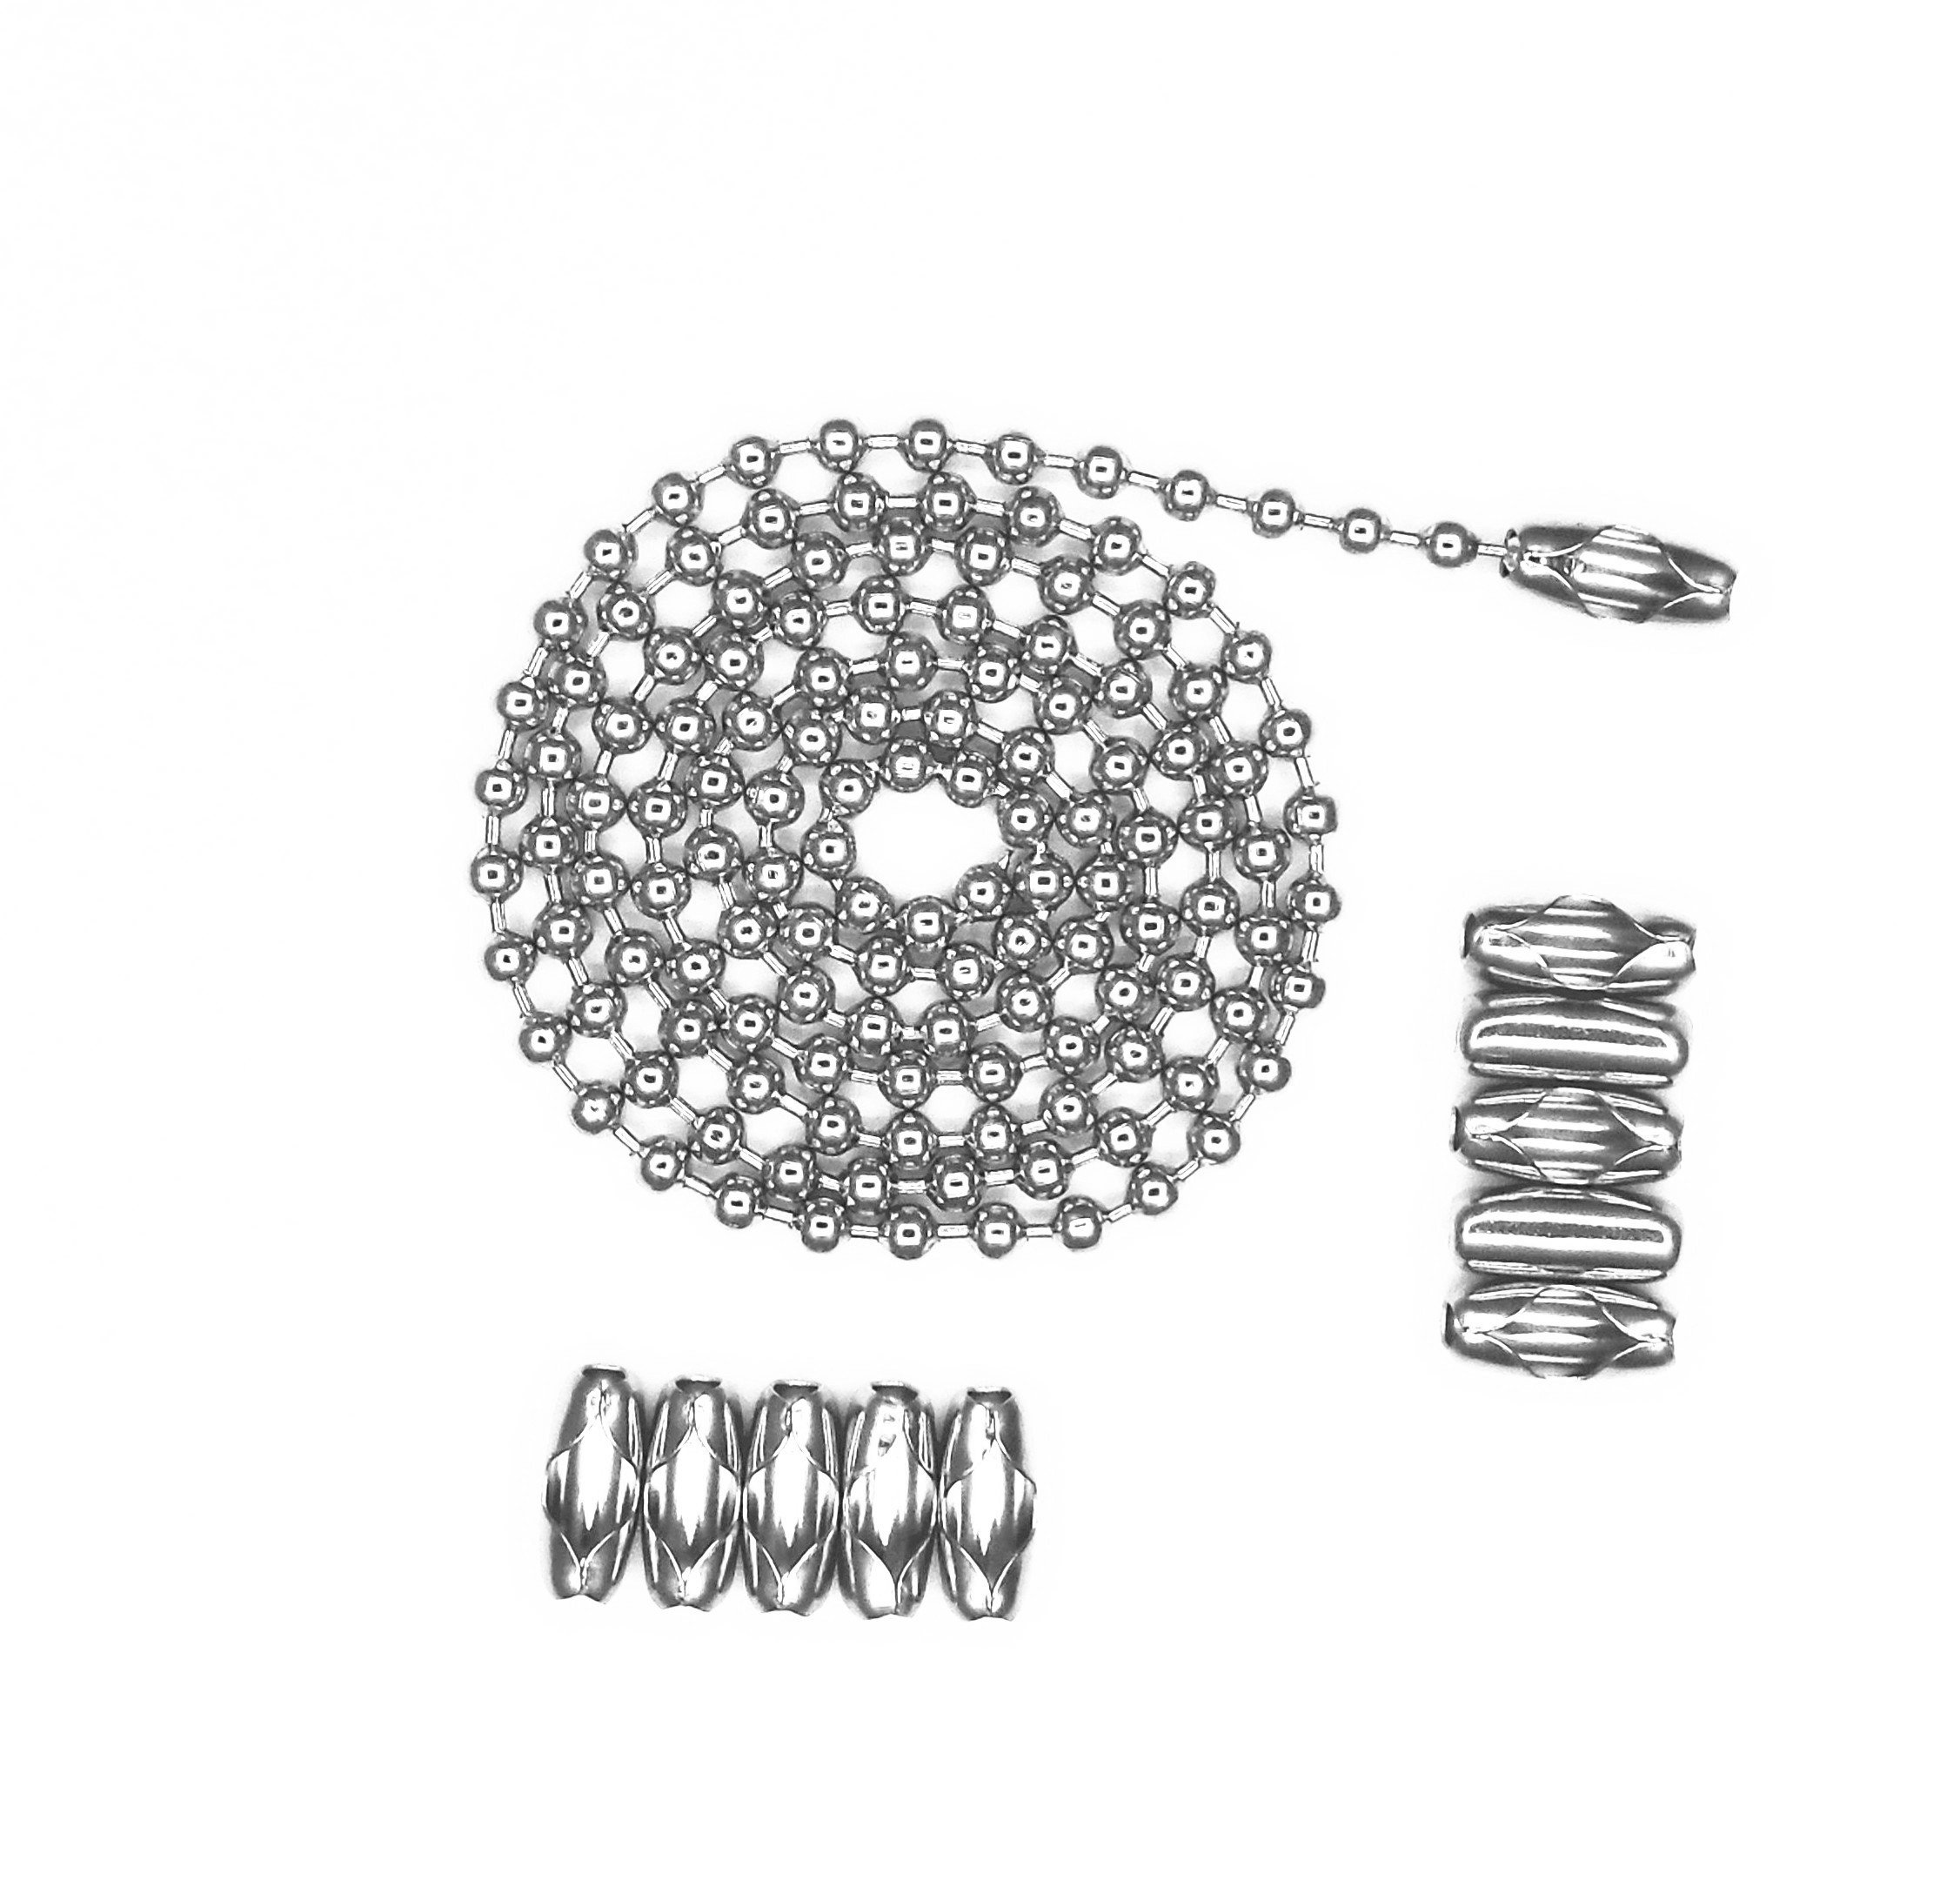 Glory Qin 4.0mm Stainless Steel Ball Chains & 10 Matching connectors (#8, 10 Feet) by Glory Qin